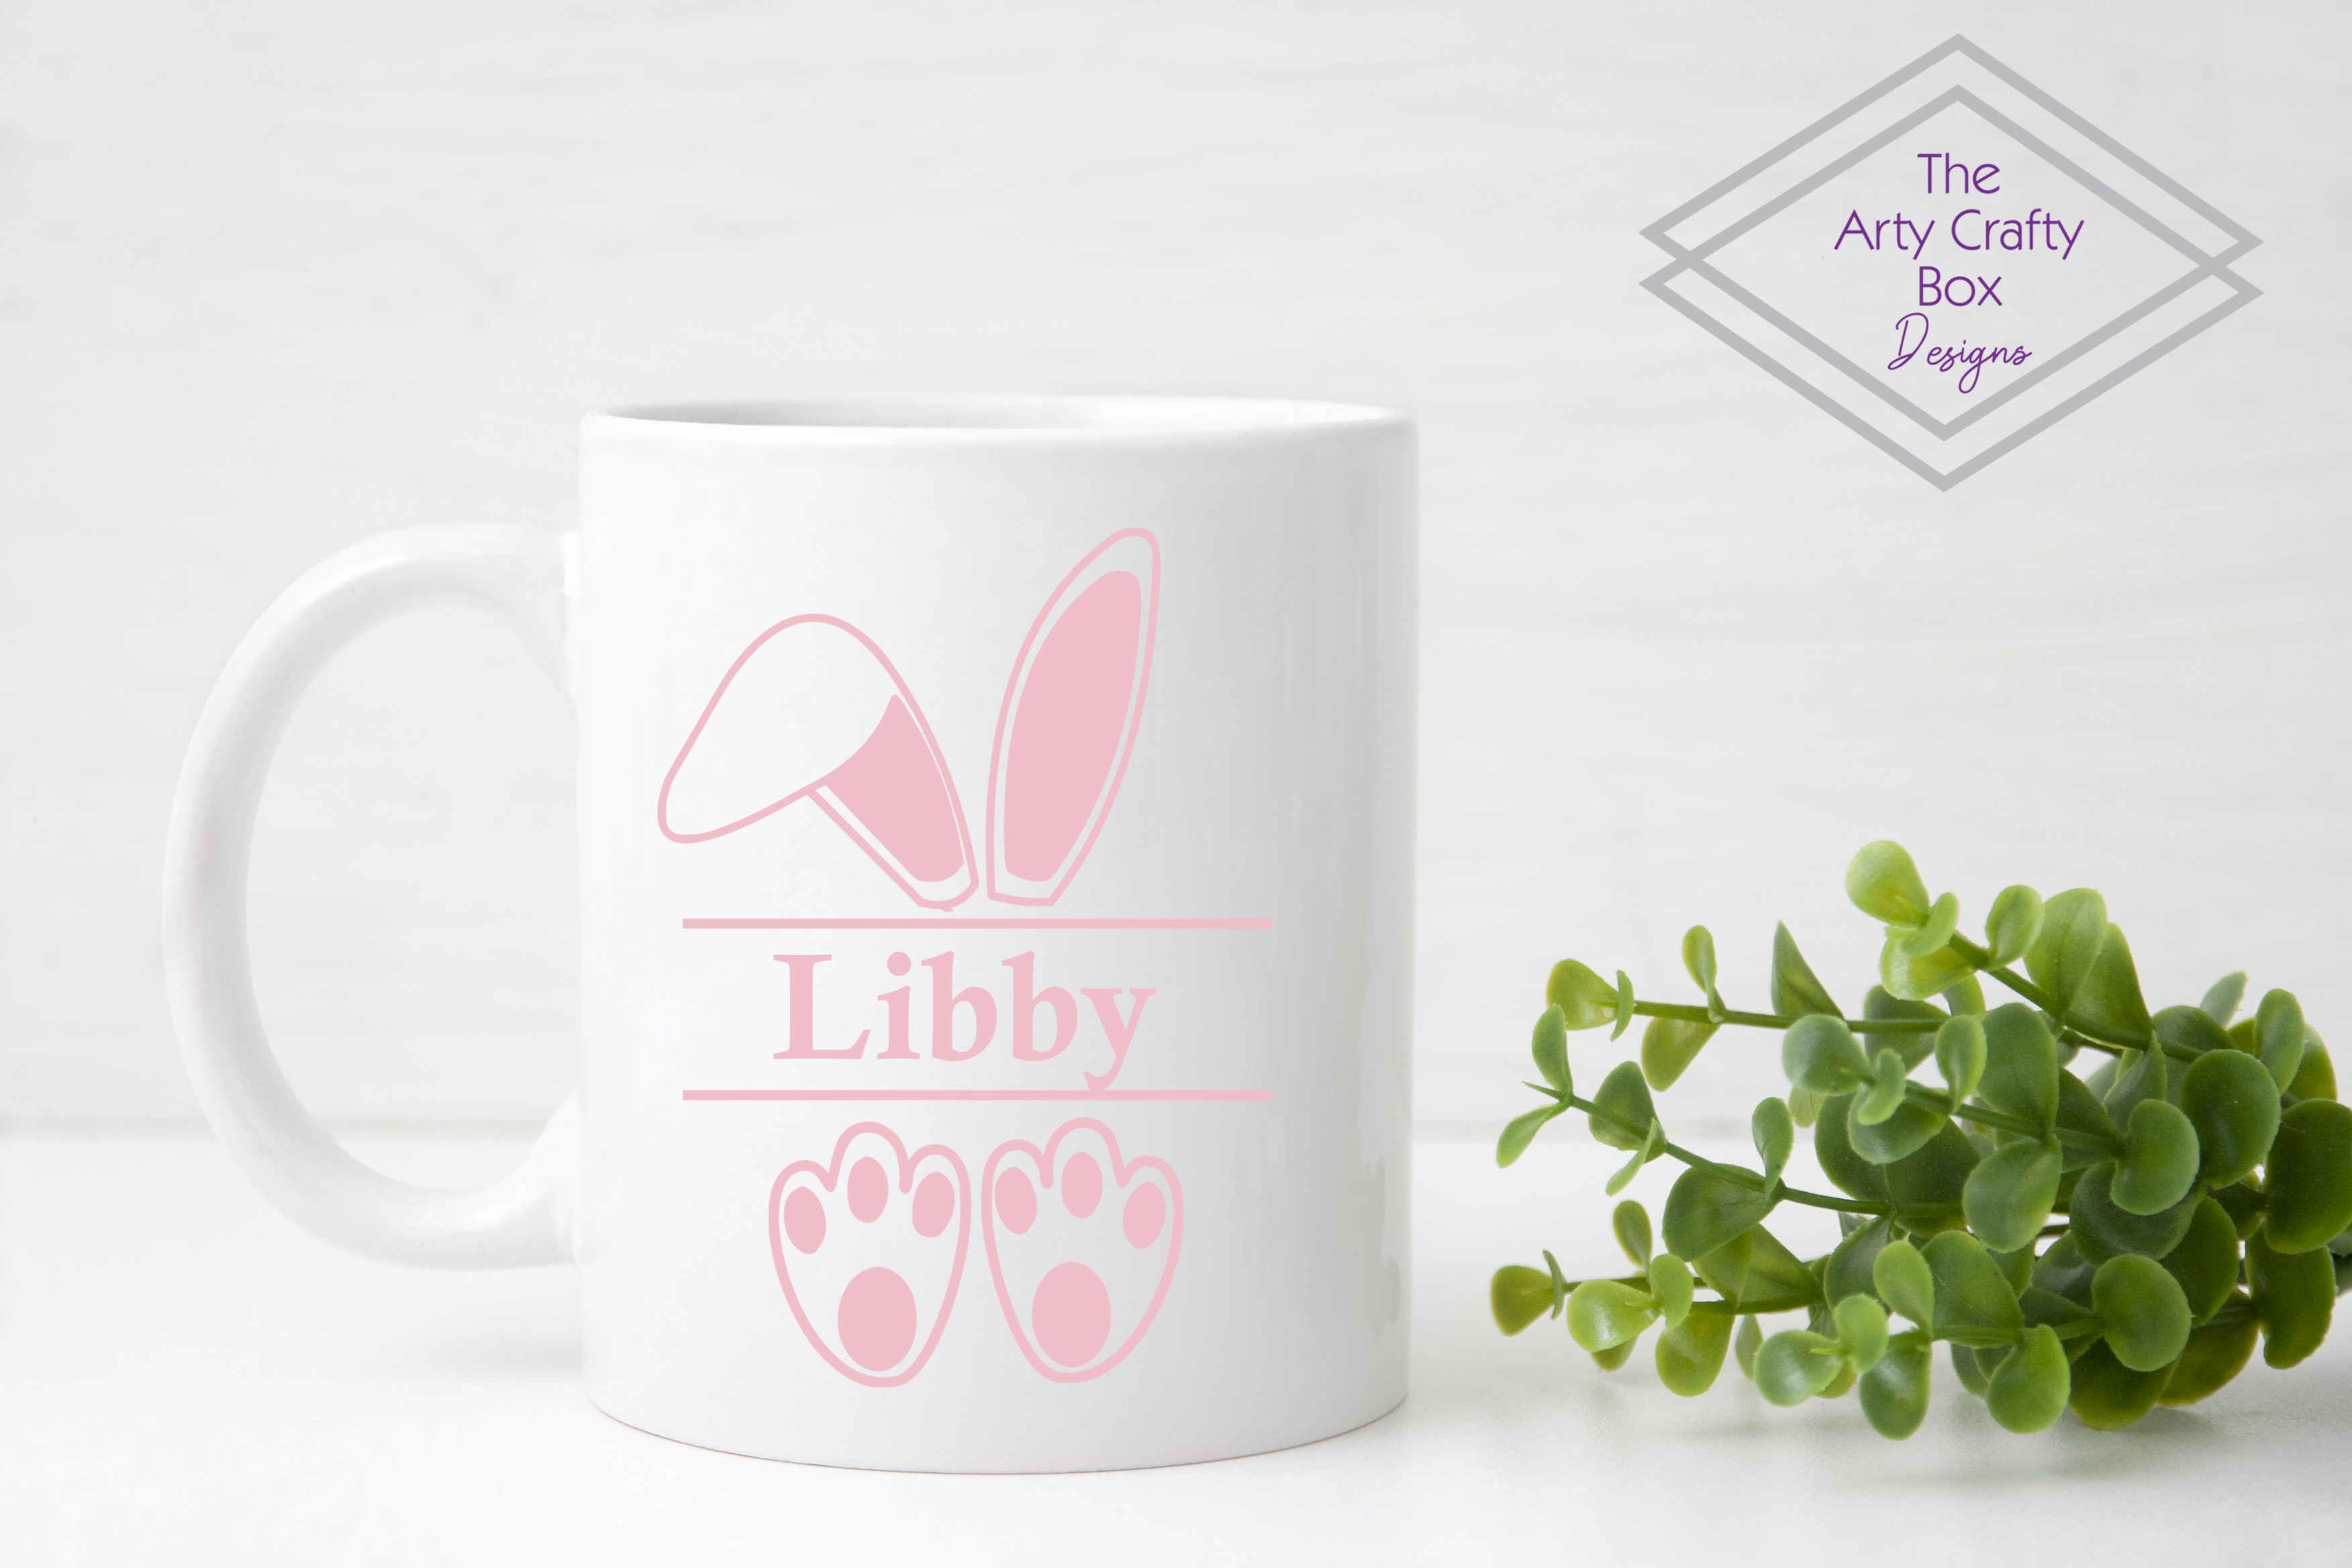 Download Free Bunny Ears And Feet Graphic By The Arty Crafty Box Designs for Cricut Explore, Silhouette and other cutting machines.